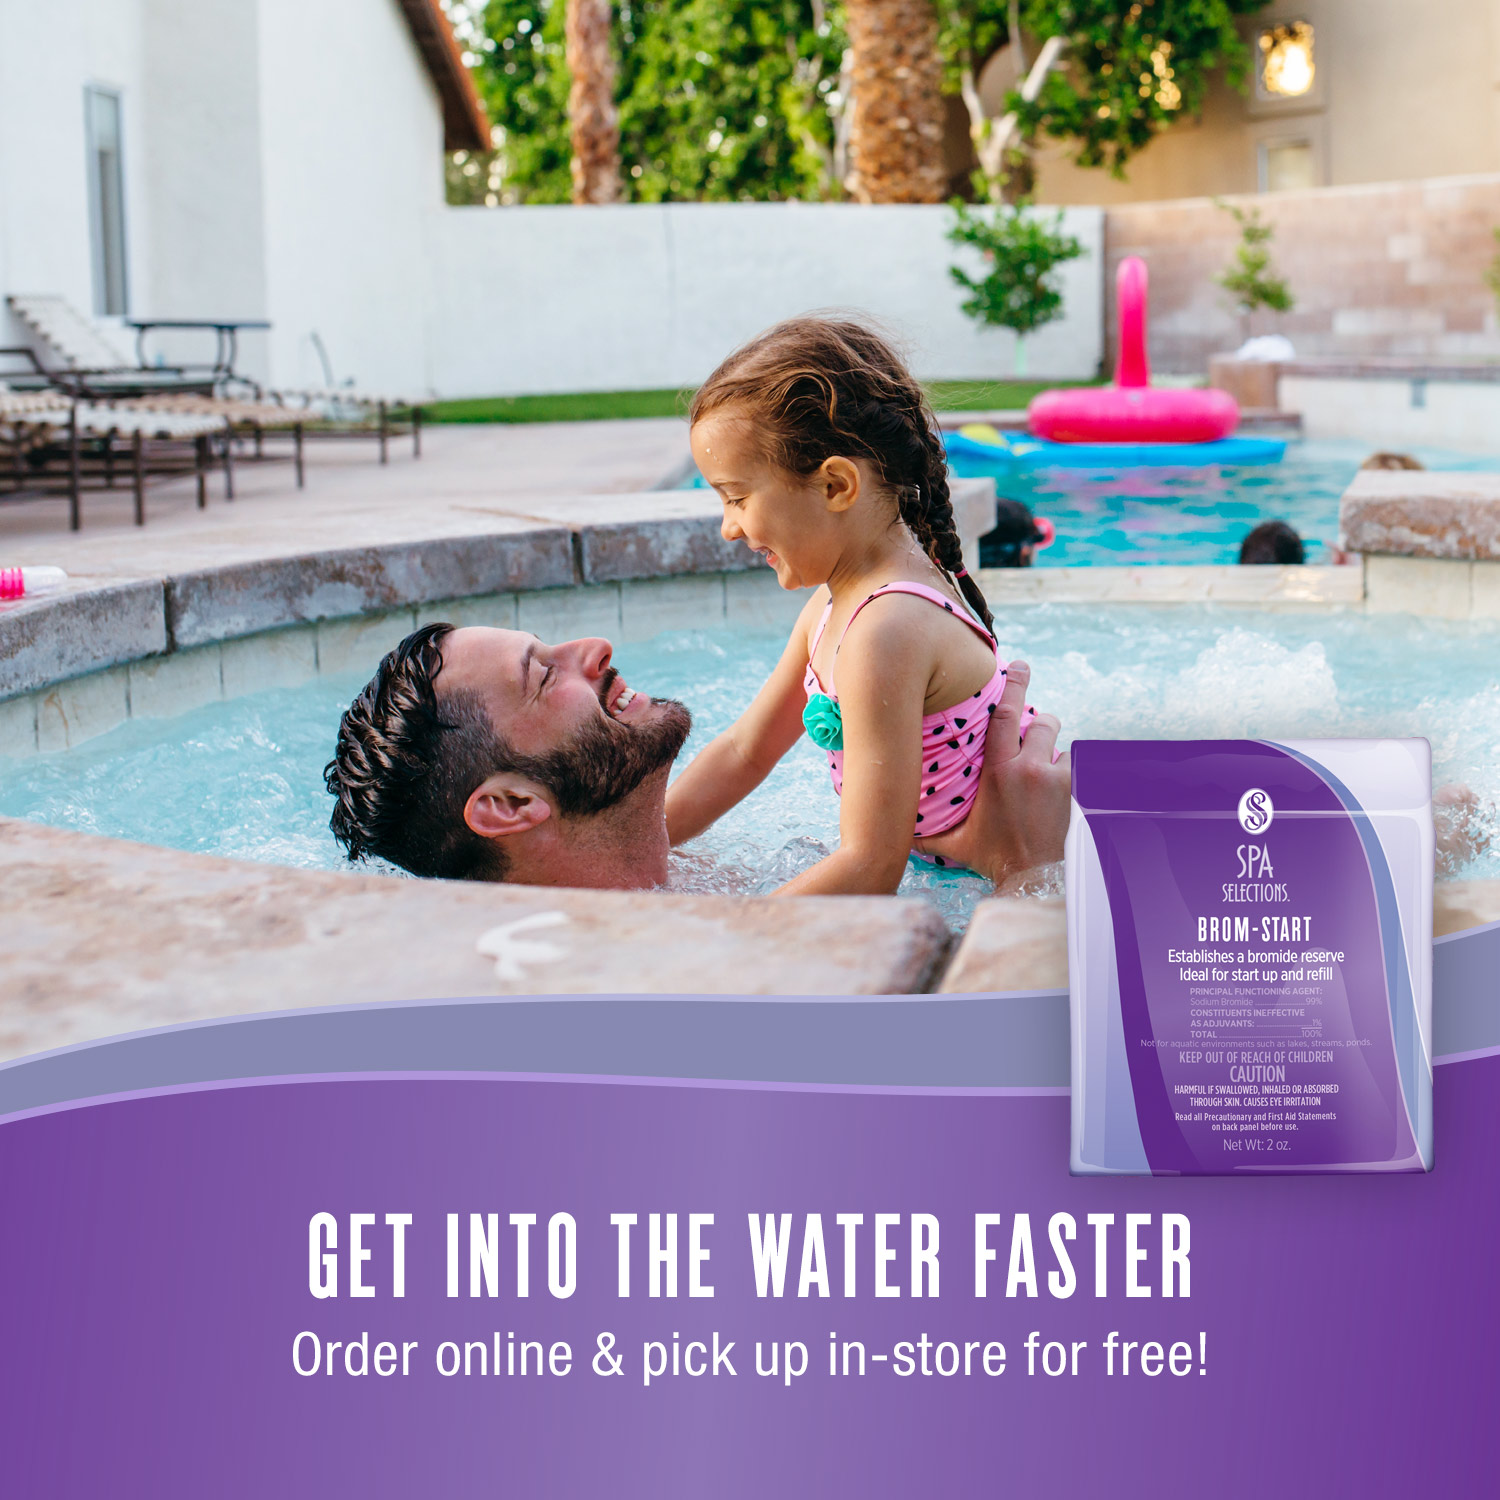 Father and daughter enjoying outdoor hot tub. Get into the water faster with Spa Selections Brom-Start, order online and pick up in-store for free!